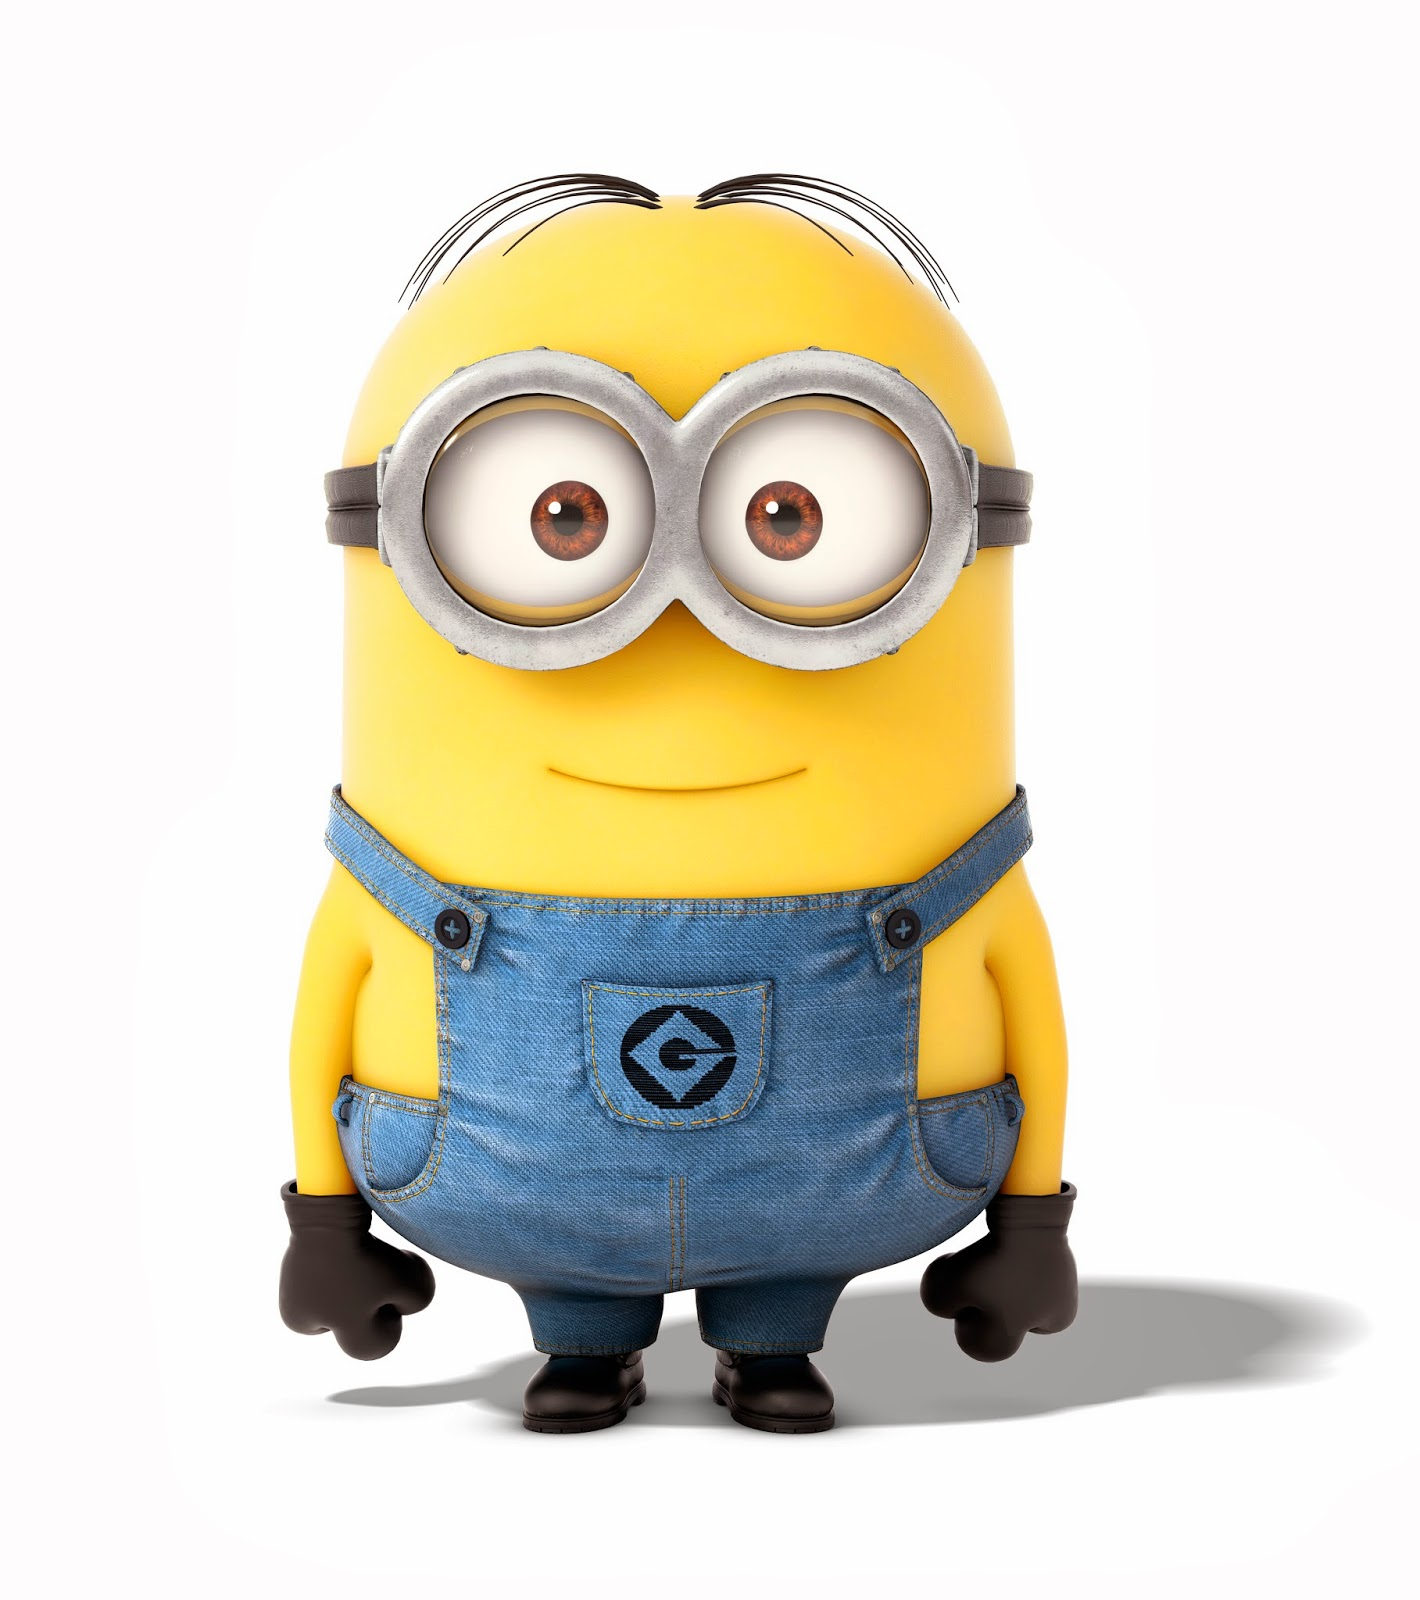 Minions Funny Free Images Is It For PARTIES